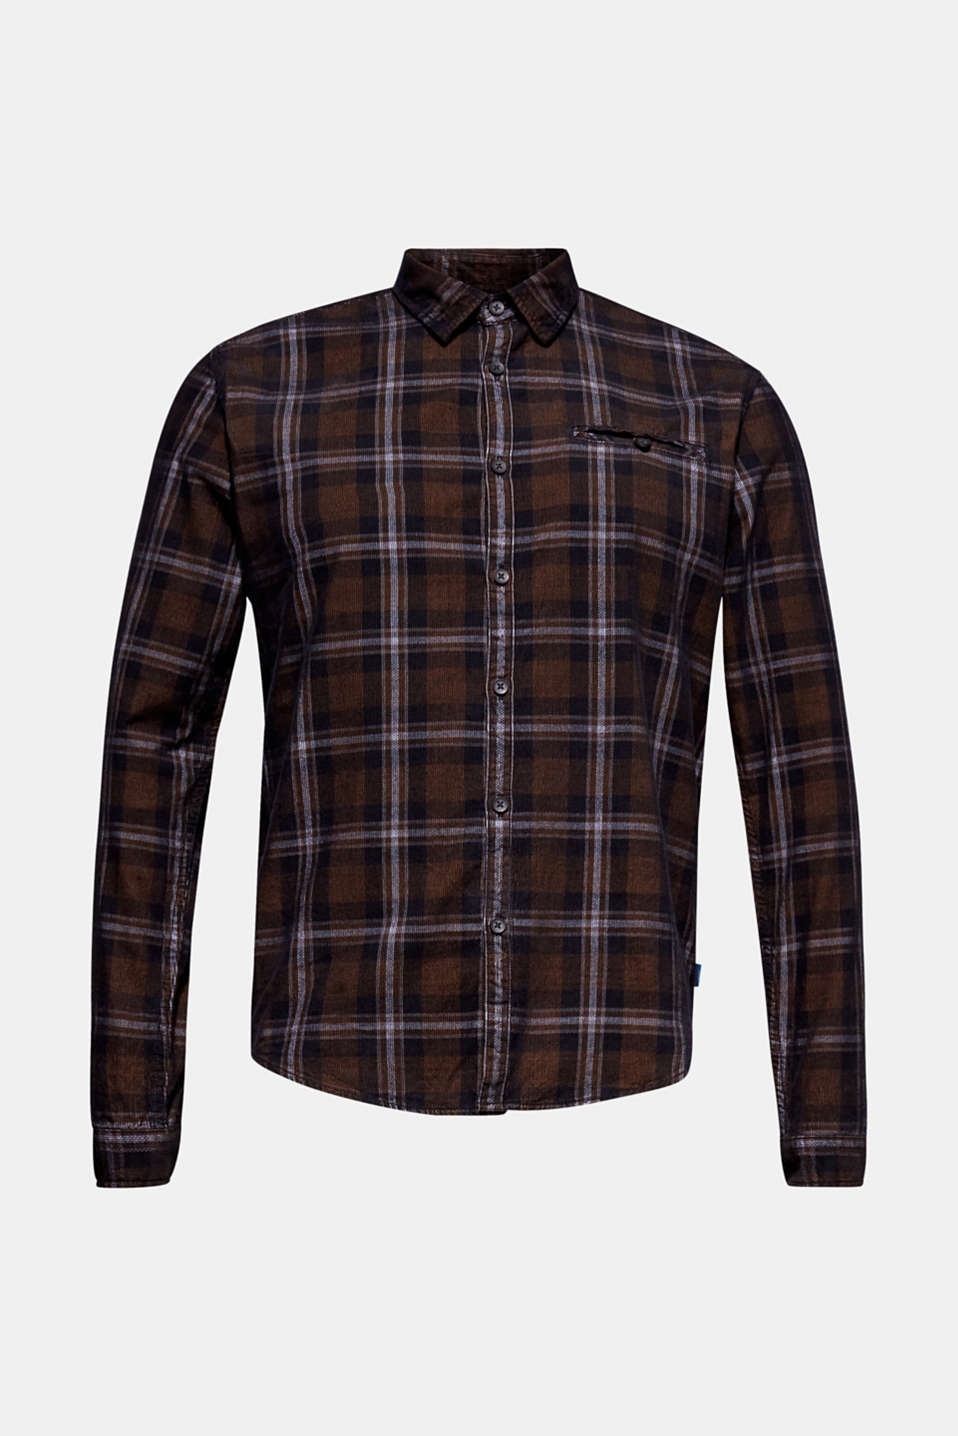 Corduroy top with a check pattern, 100% cotton, GREY, detail image number 5